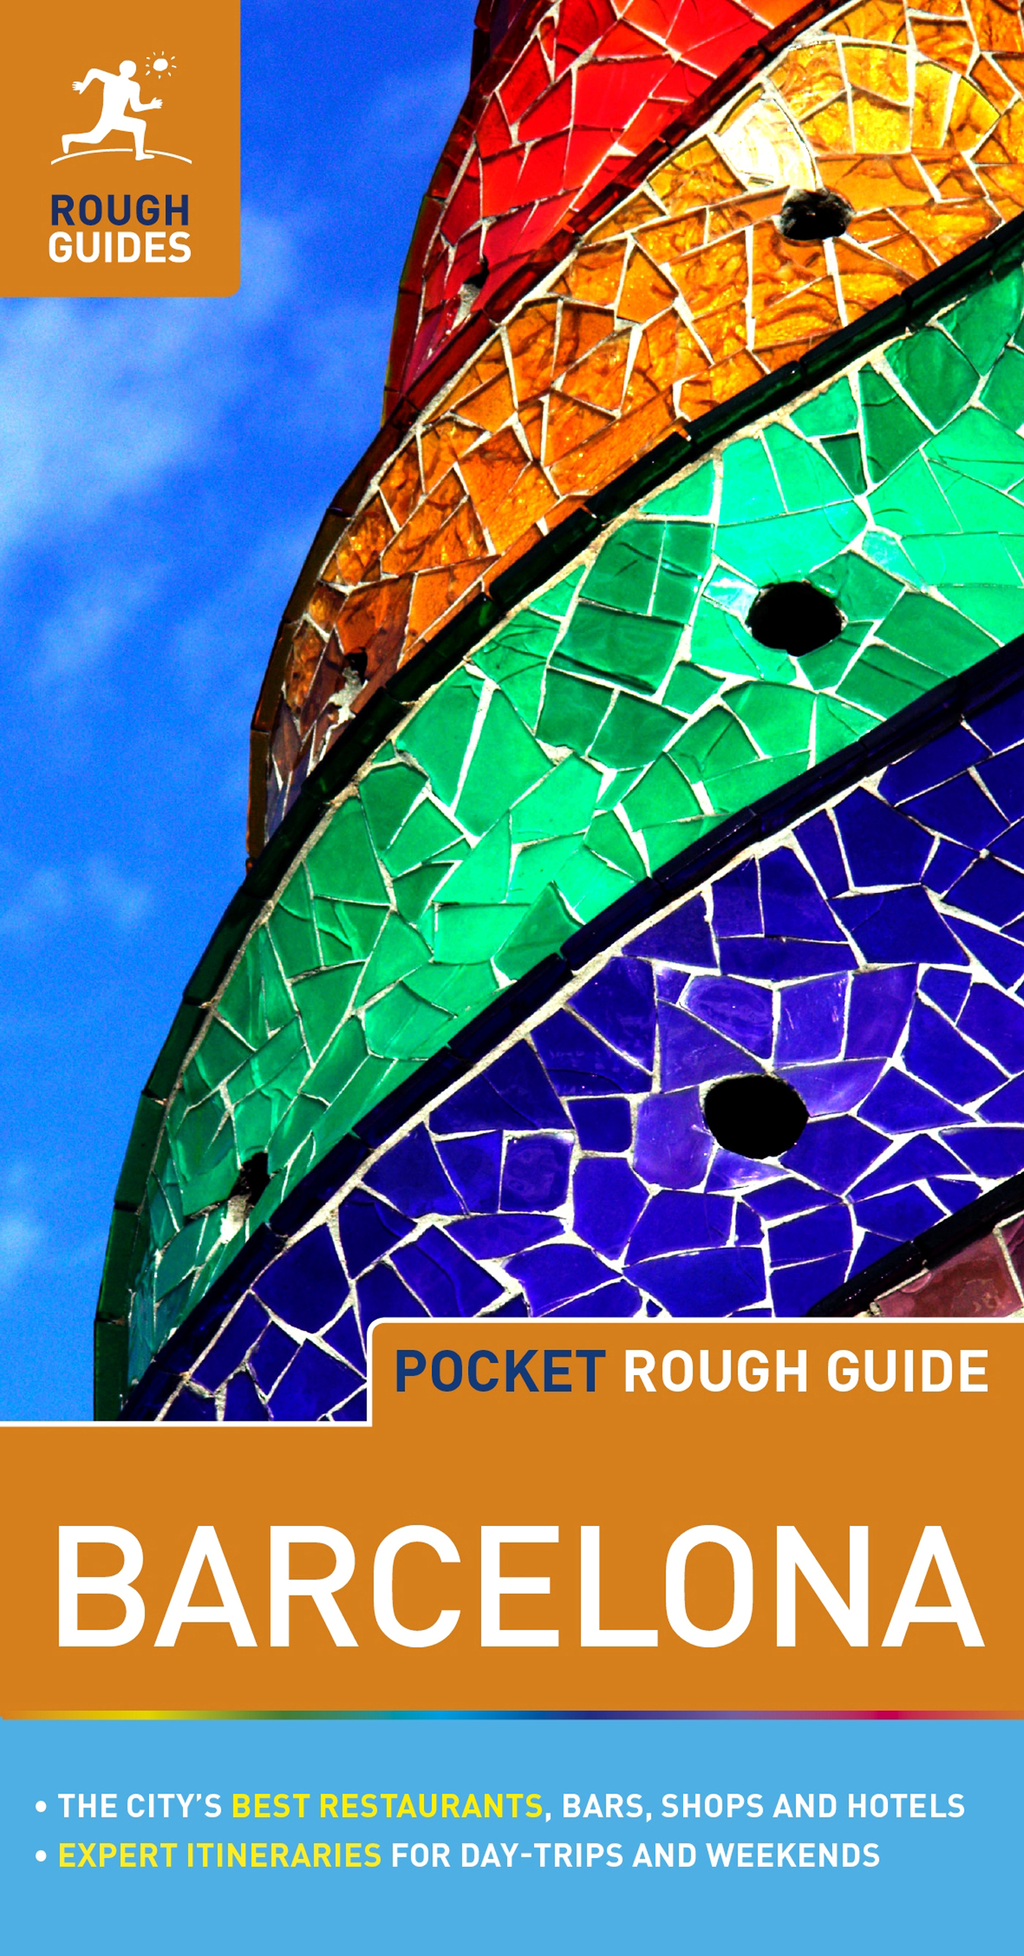 Pocket Rough Guide Barcelona